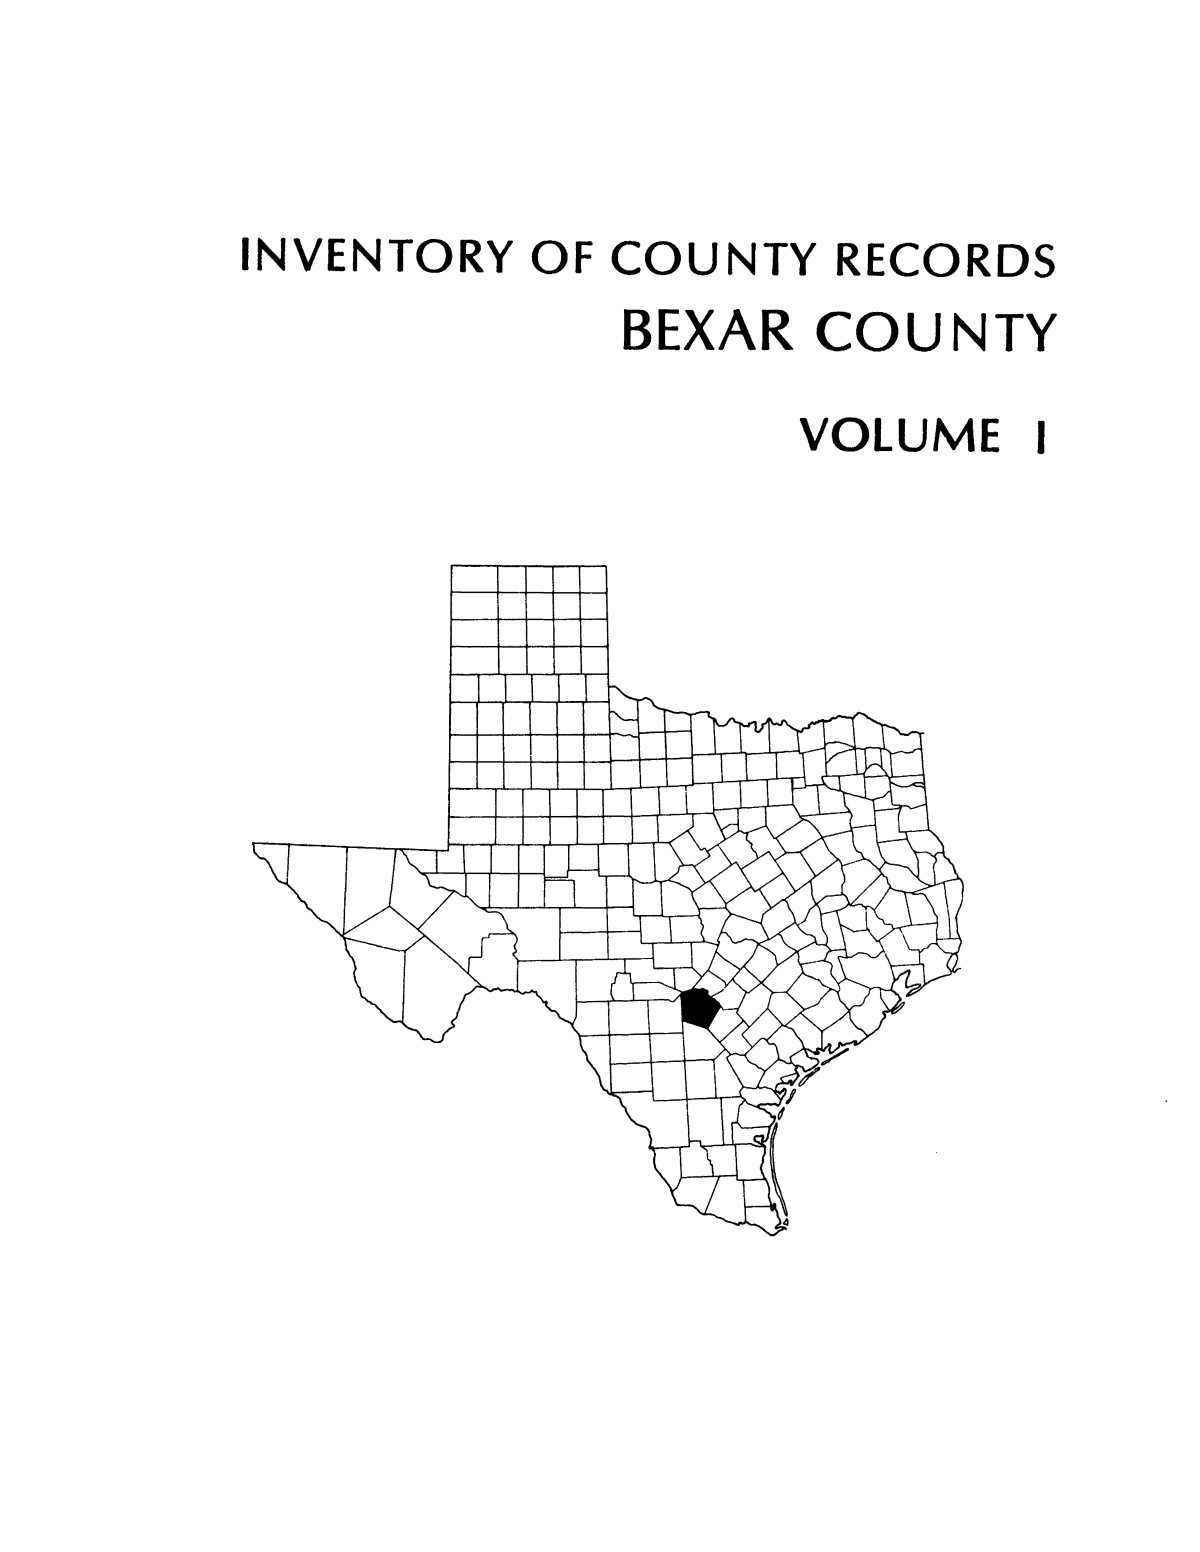 Inventory of county records, Bexar County courthouse, San